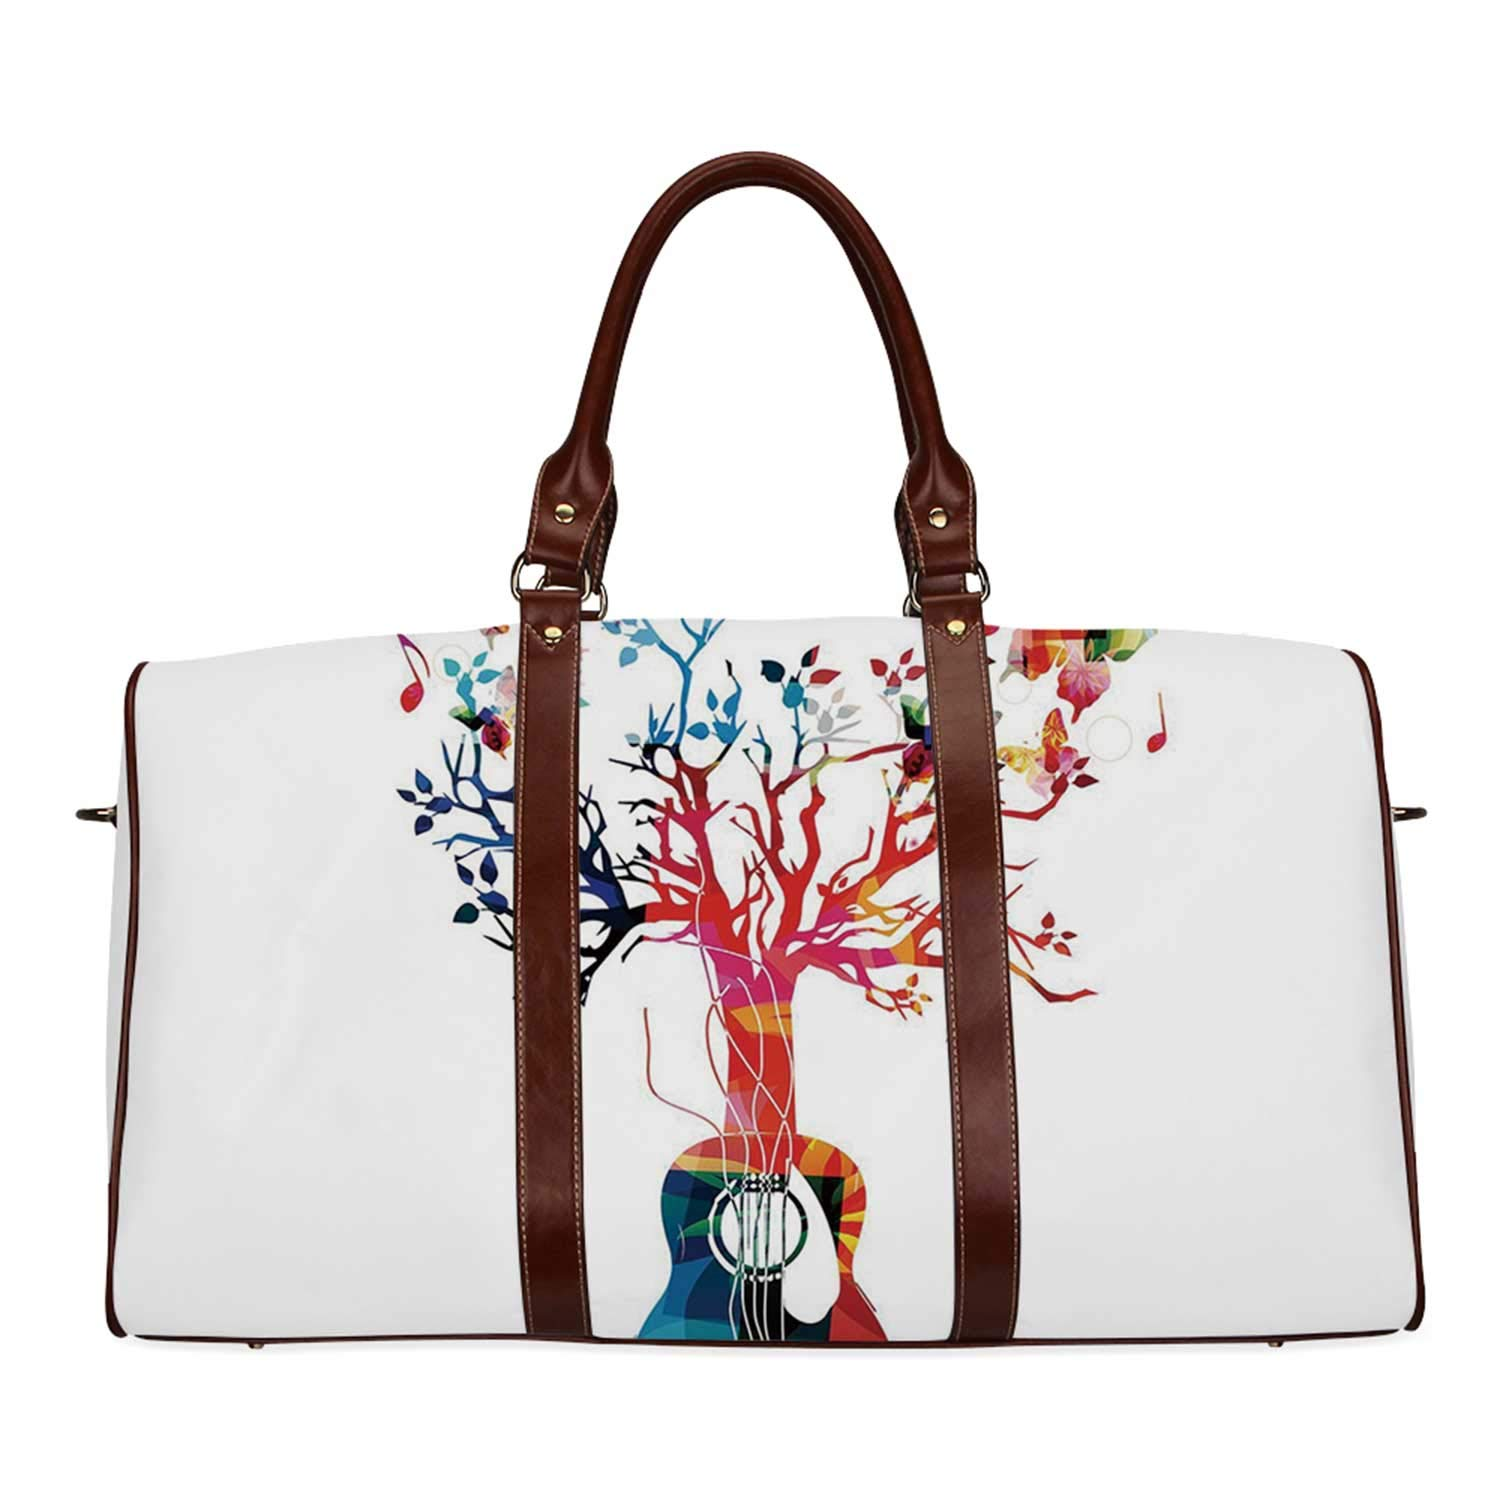 Guitar Economic Travel Bag,Colorful Musical Composition with Guitar Tree and Butterflies Artistic Inspiration for Weekend,20.8''L x 12''W x 9.8''H by YOLIYANA